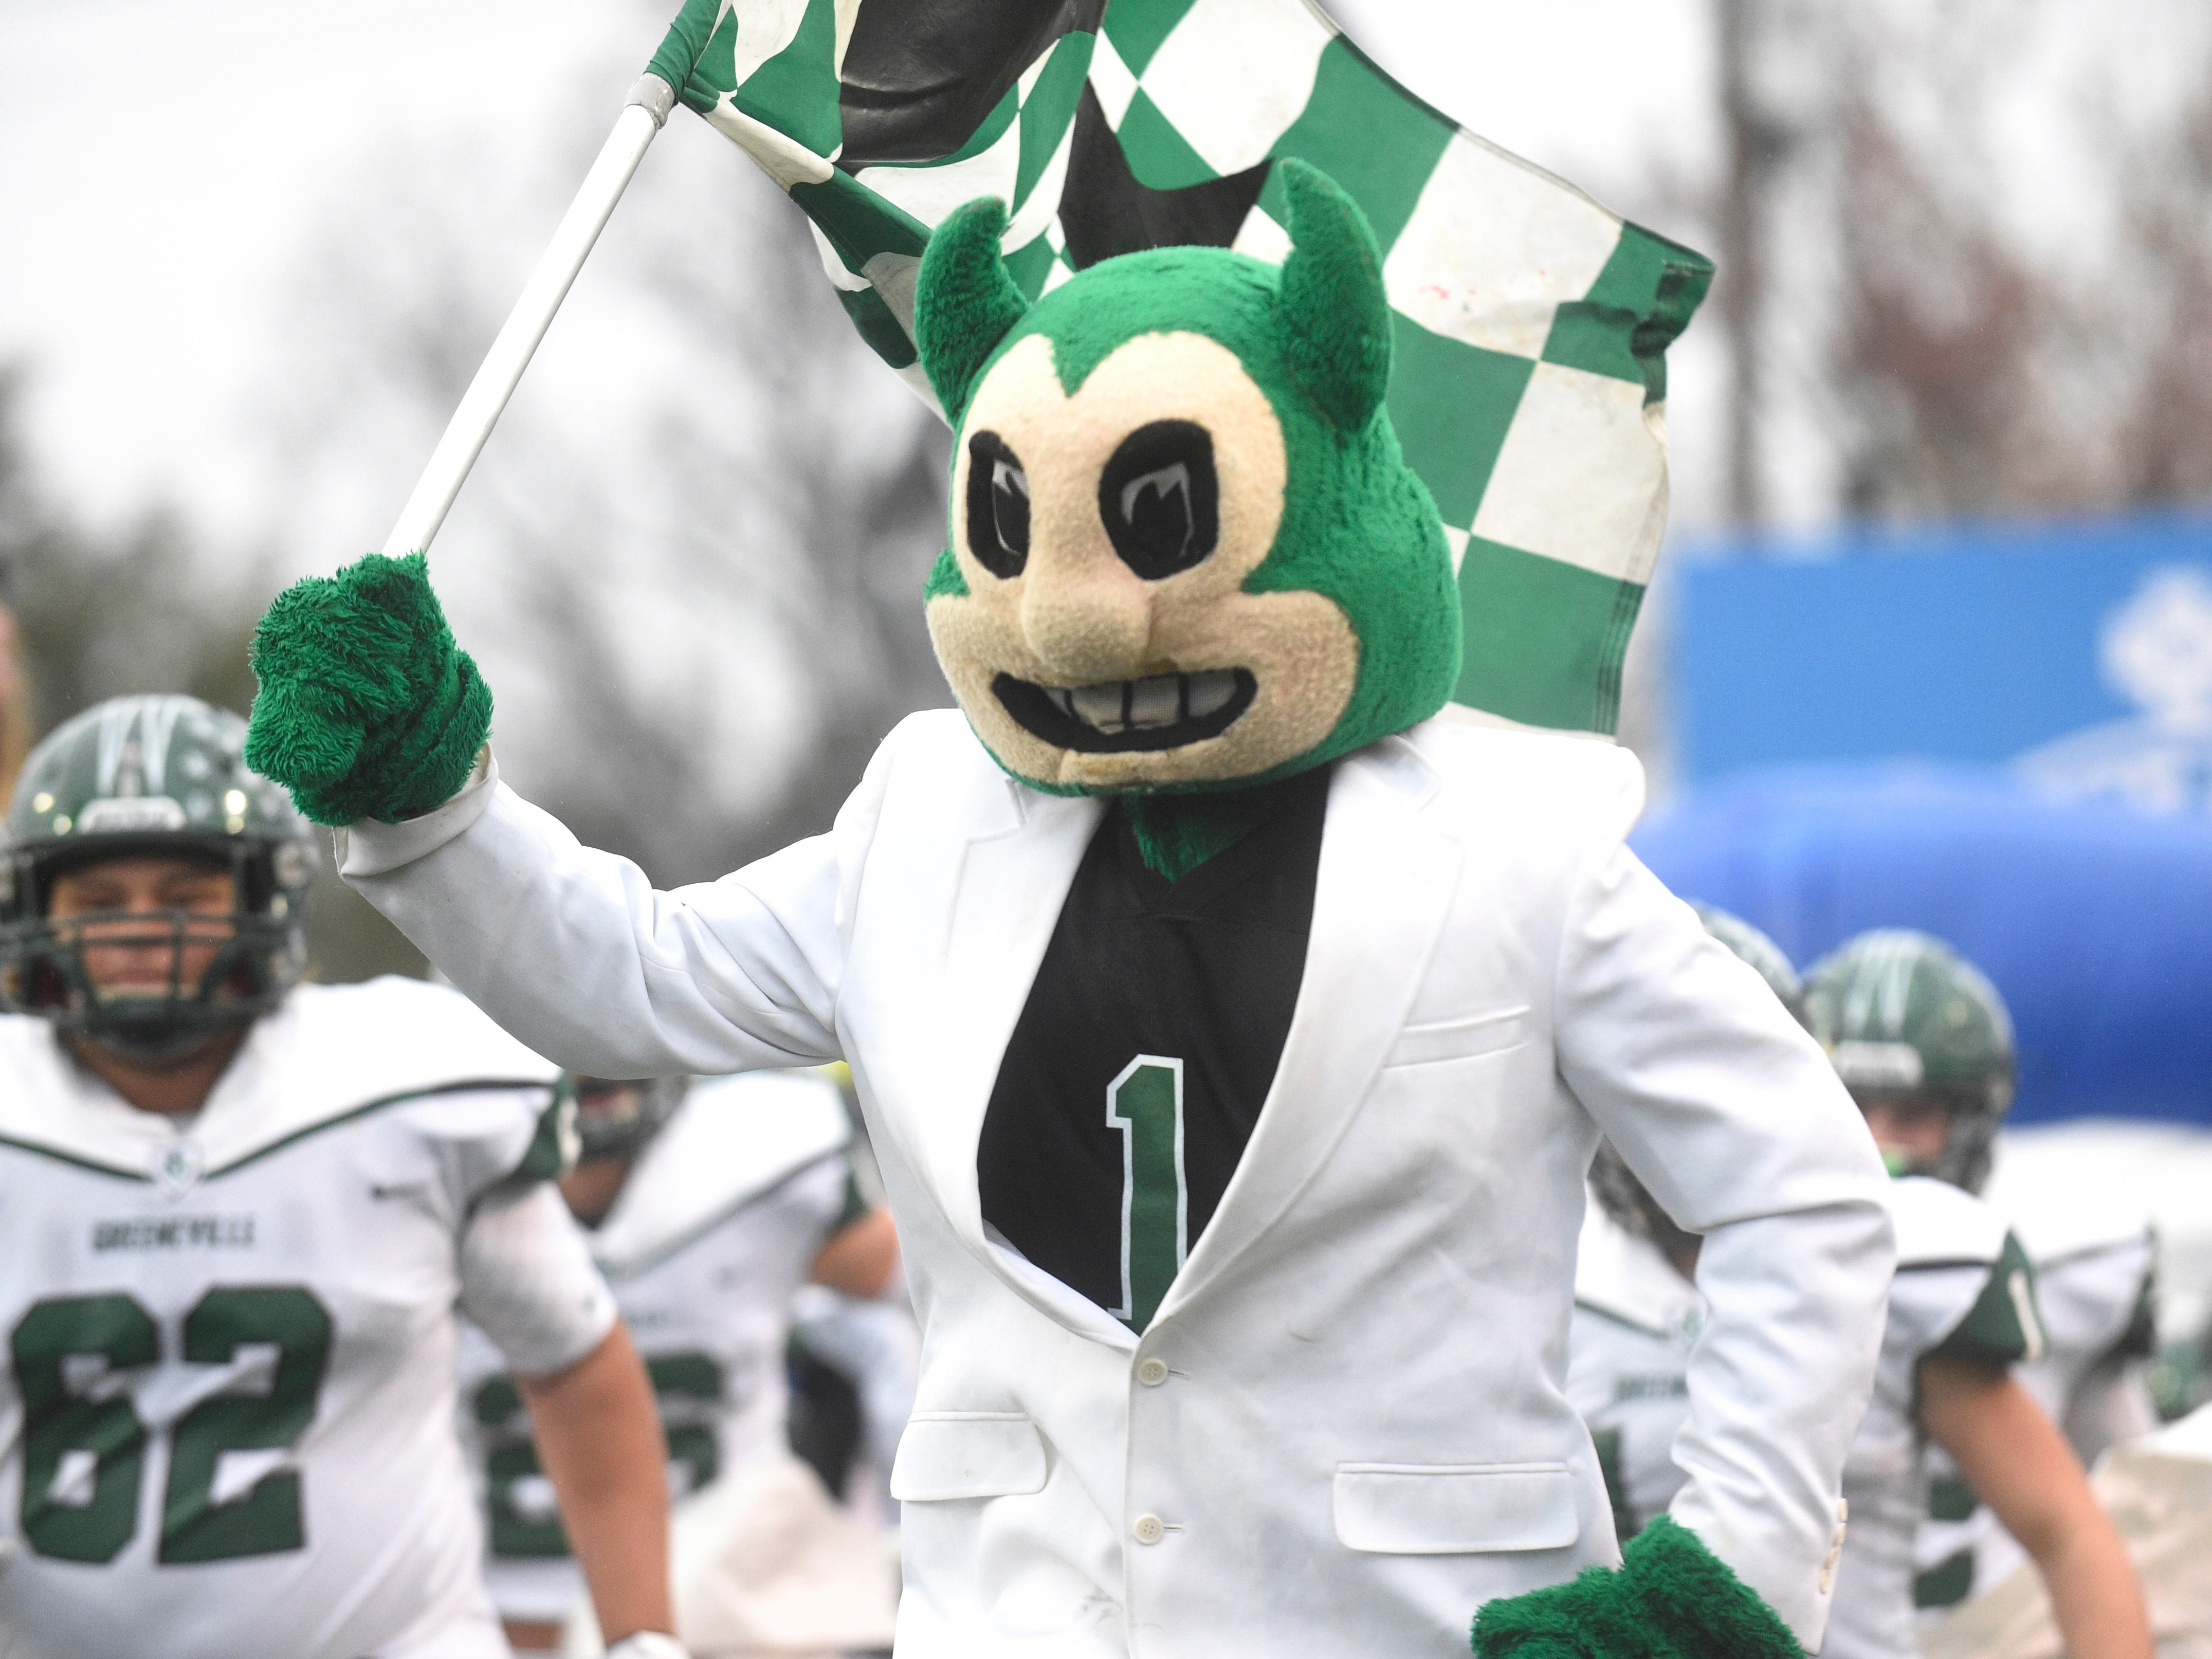 The Greeneville mascot cheers before the Class 4A BlueCross Bowl state championship at Tennessee Tech's Tucker Stadium in Cookeville, Tenn., on Thursday, Nov. 29, 2018.